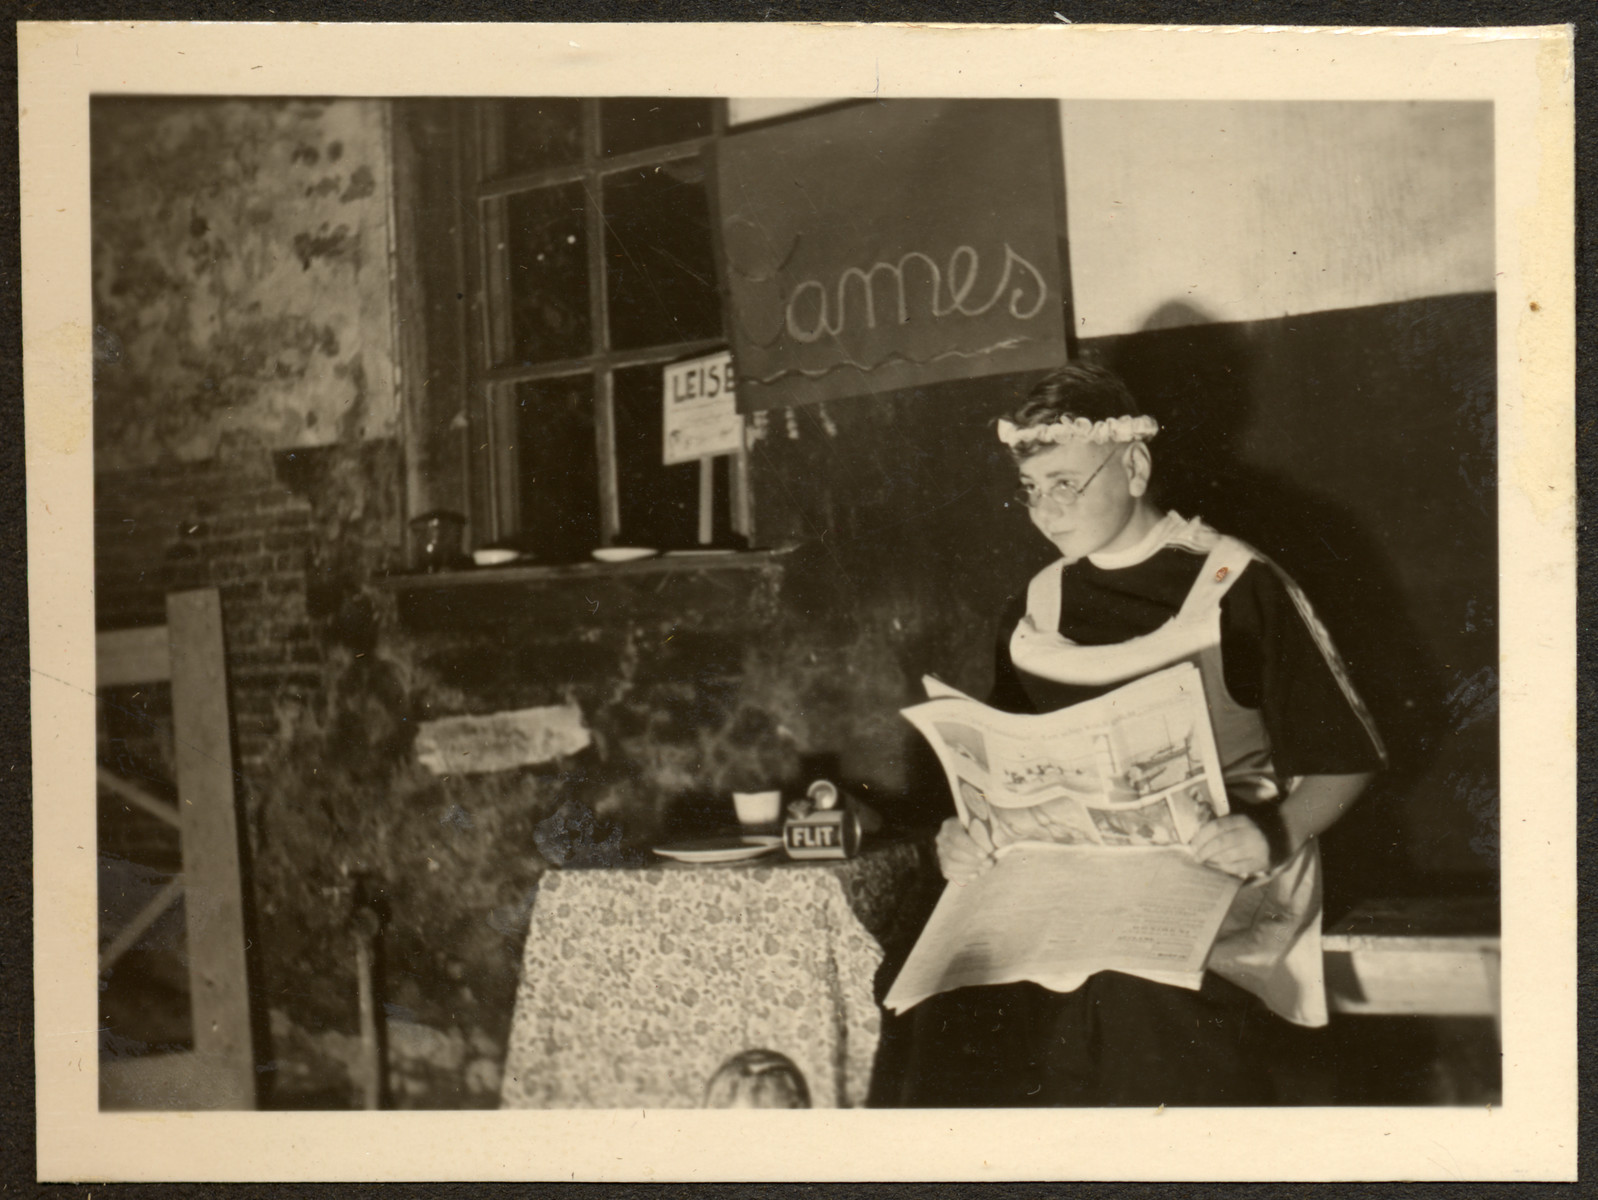 A young boy, perhaps a German-Jewish refugee, performes in a play at a Quaker boarding school in Eerde.